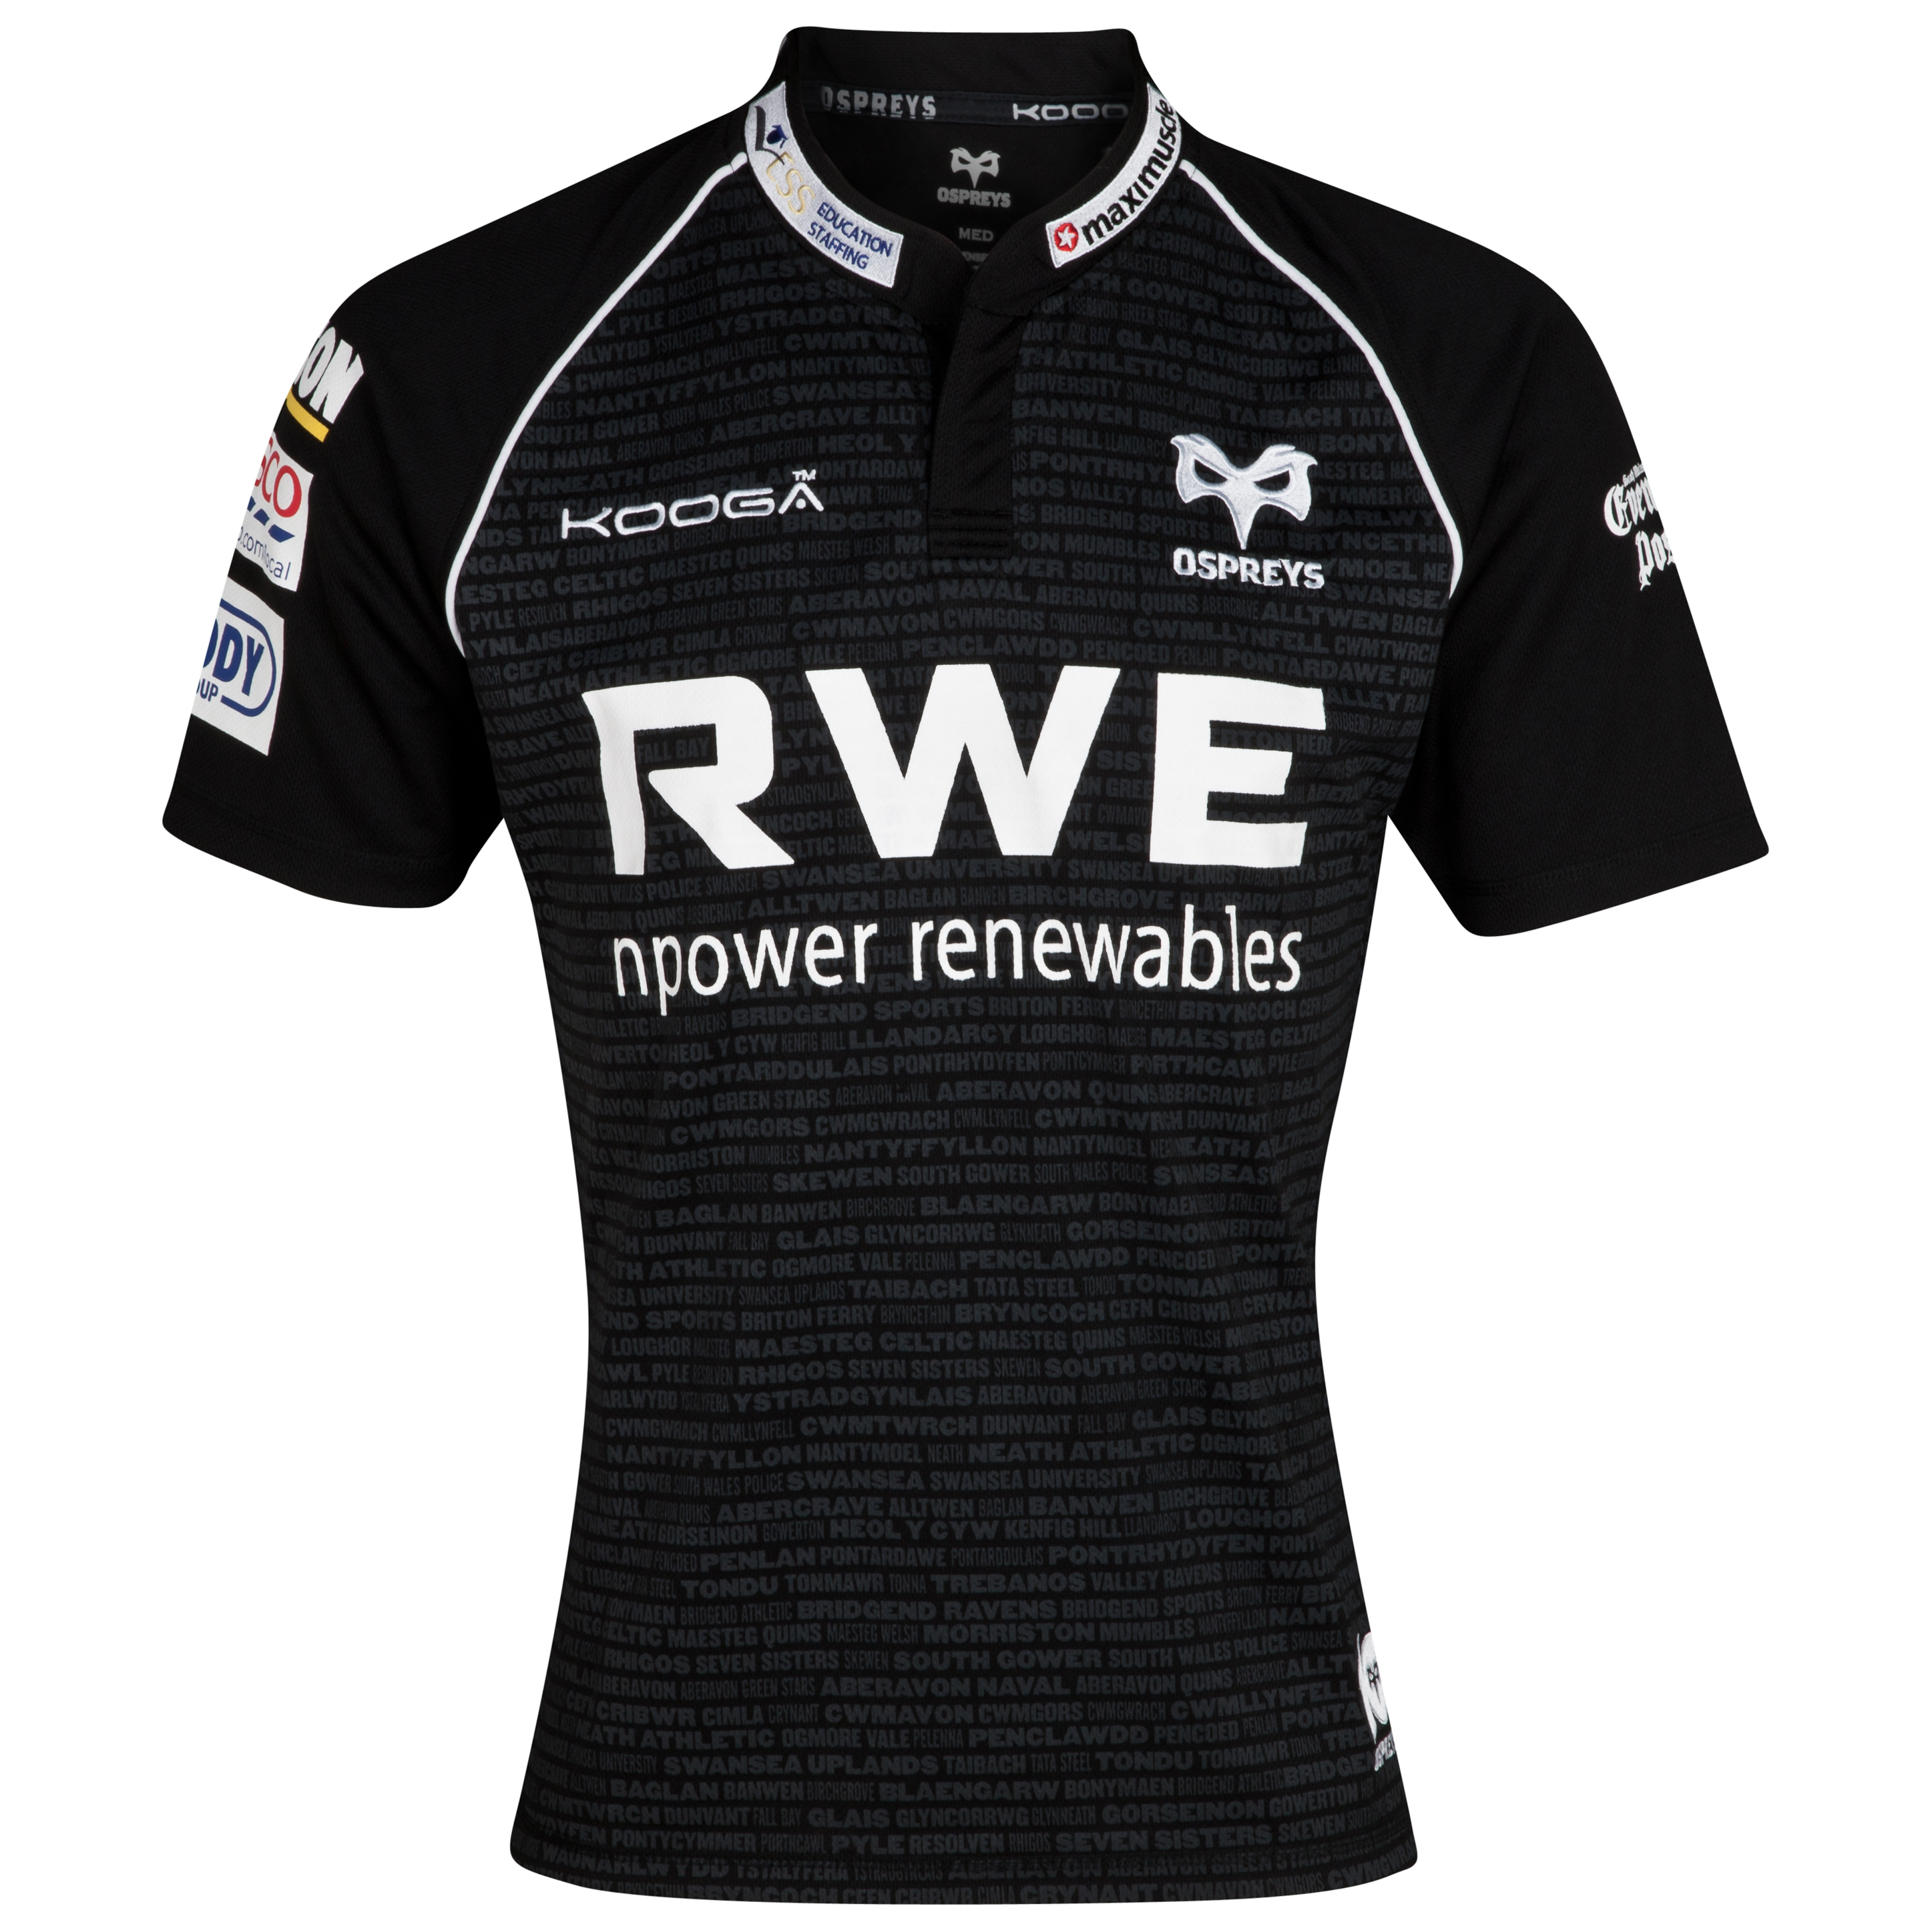 Ospreys Home Supporters Shirt 2012/13